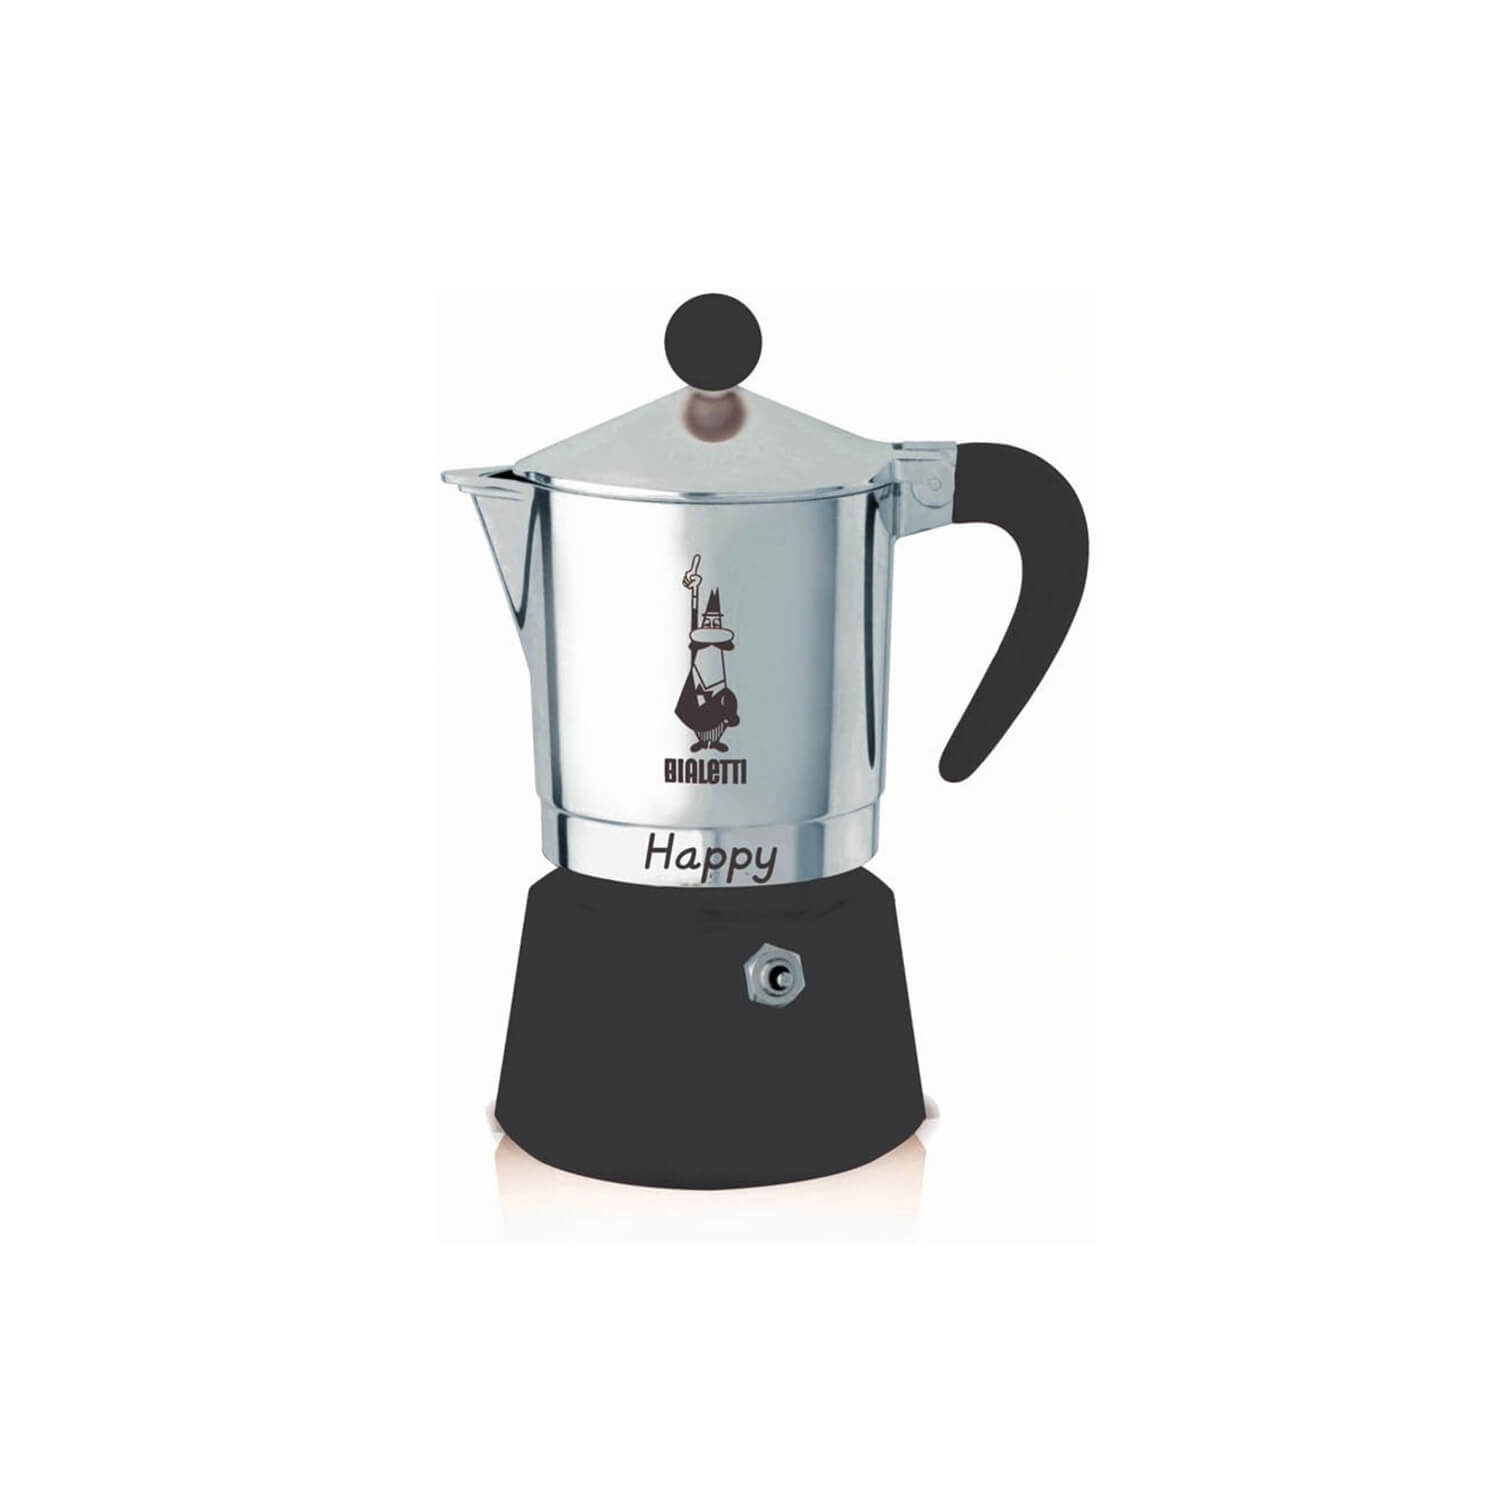 Bialetti – Happy – Black – 3 Cups